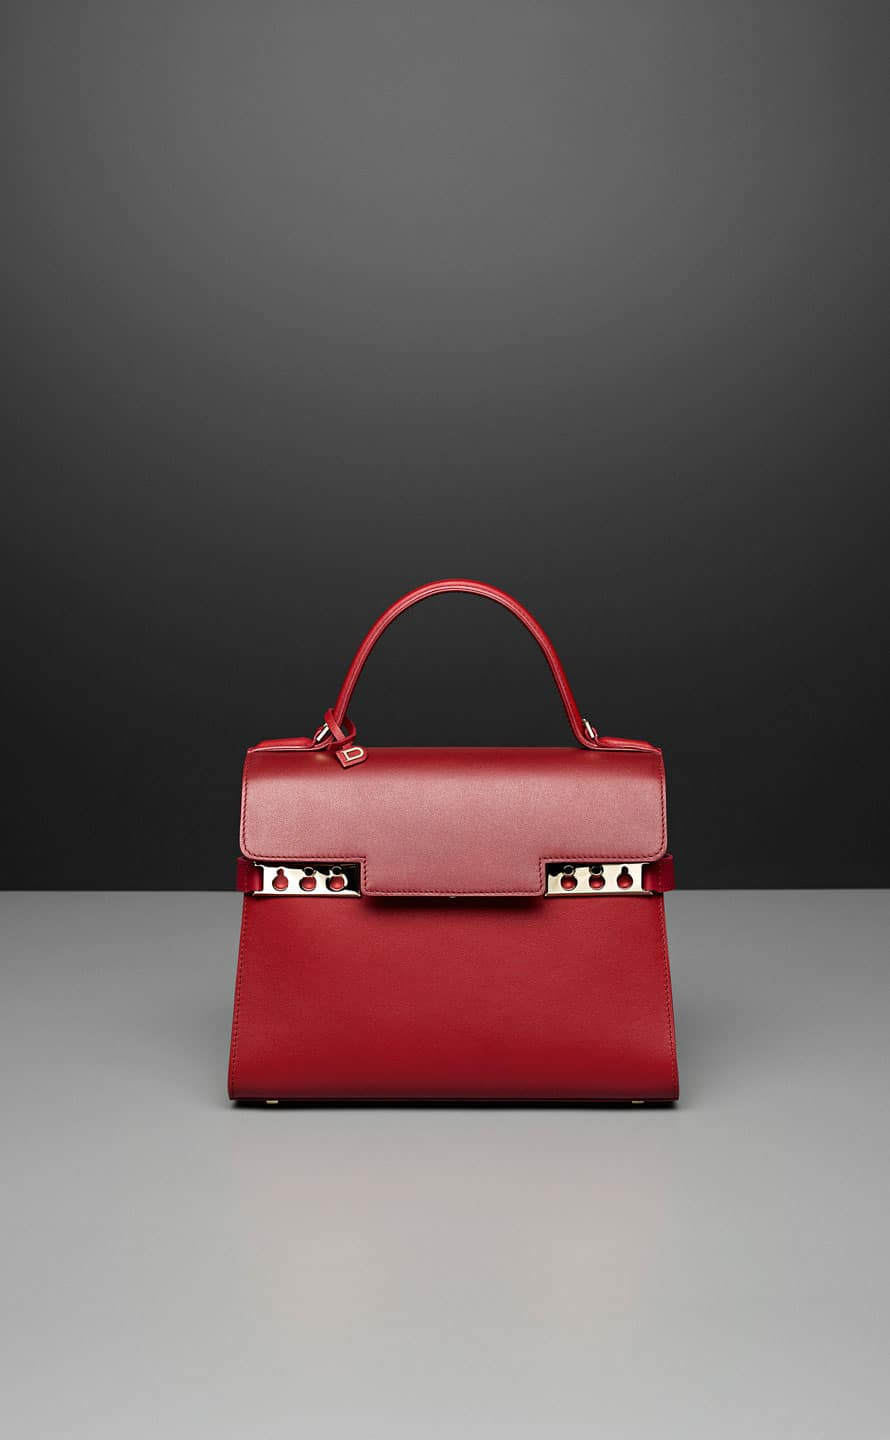 ceaa1b54c Delvaux Fall/Winter 2016 Bag Collection Featuring the Tempête Mini ...